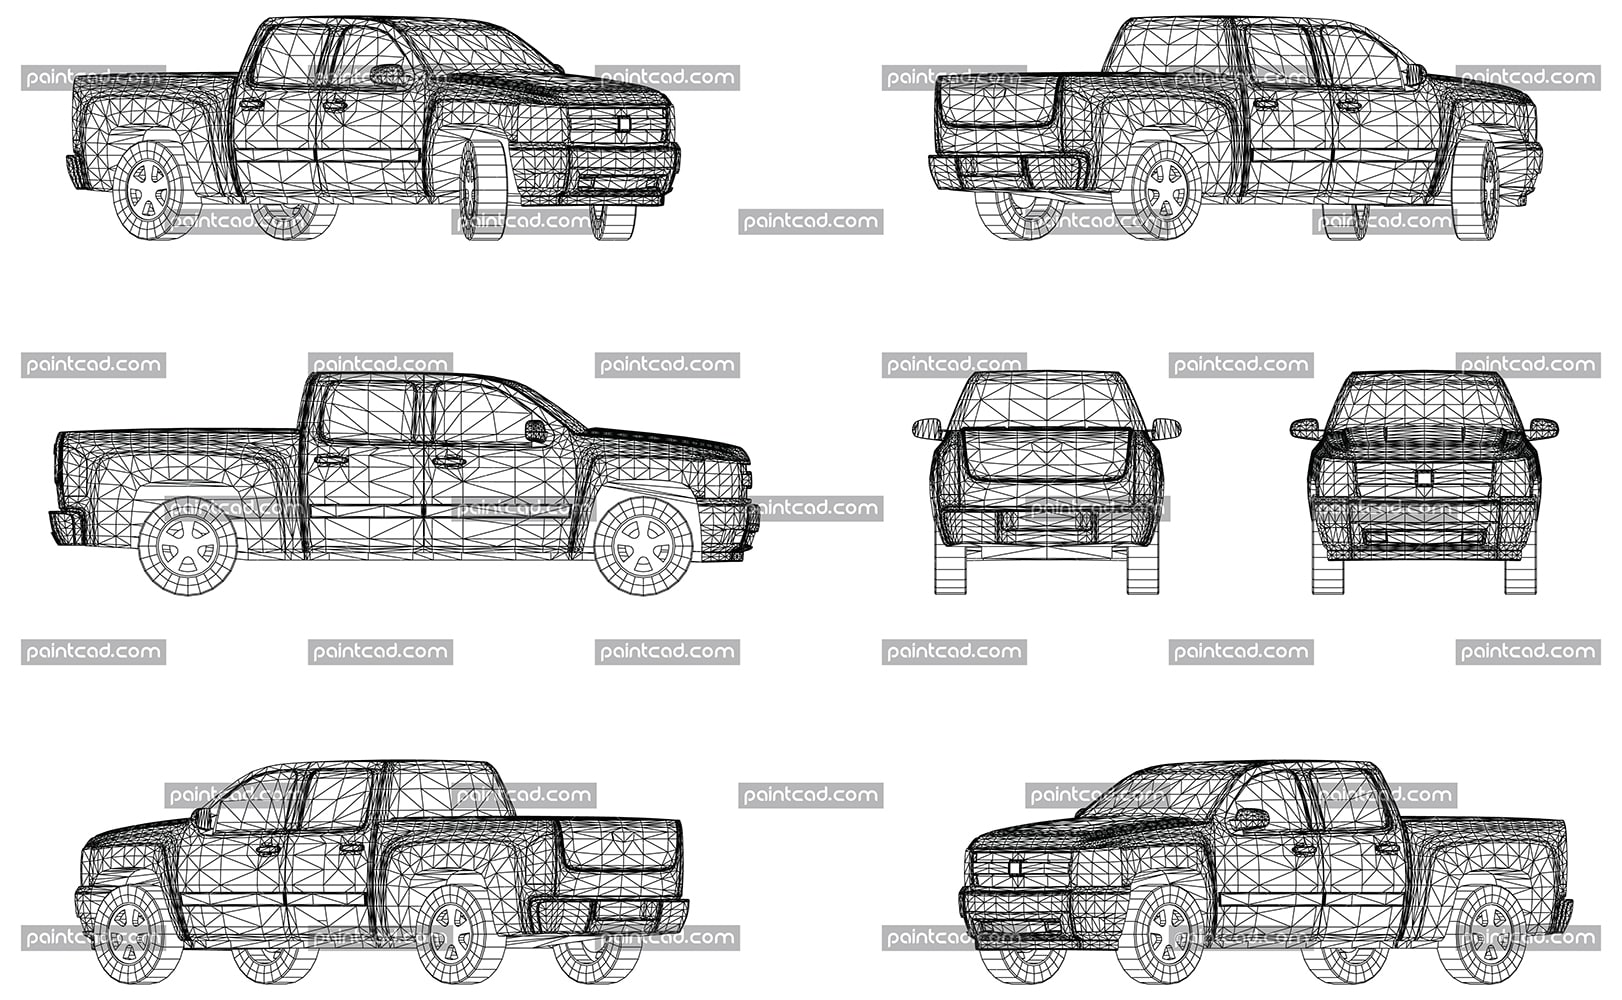 Vector drawing with wireframe model of pickup truck - vector illustration